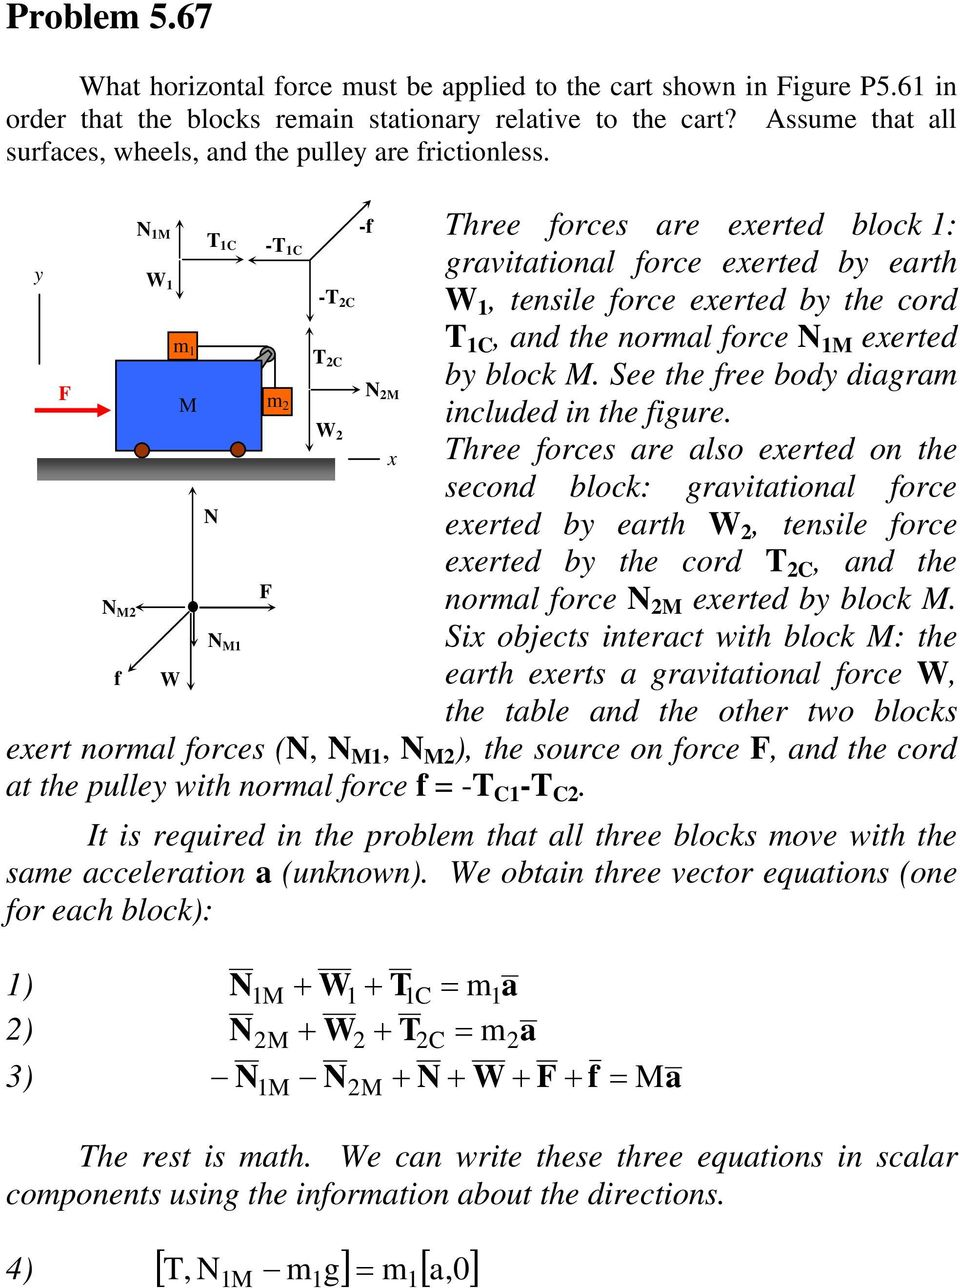 N M -f hree forces are exerted block : C - C y gravitational force exerted by earth W - C W, tensile force exerted by the cord m C, and the normal force N M exerted C by block M.